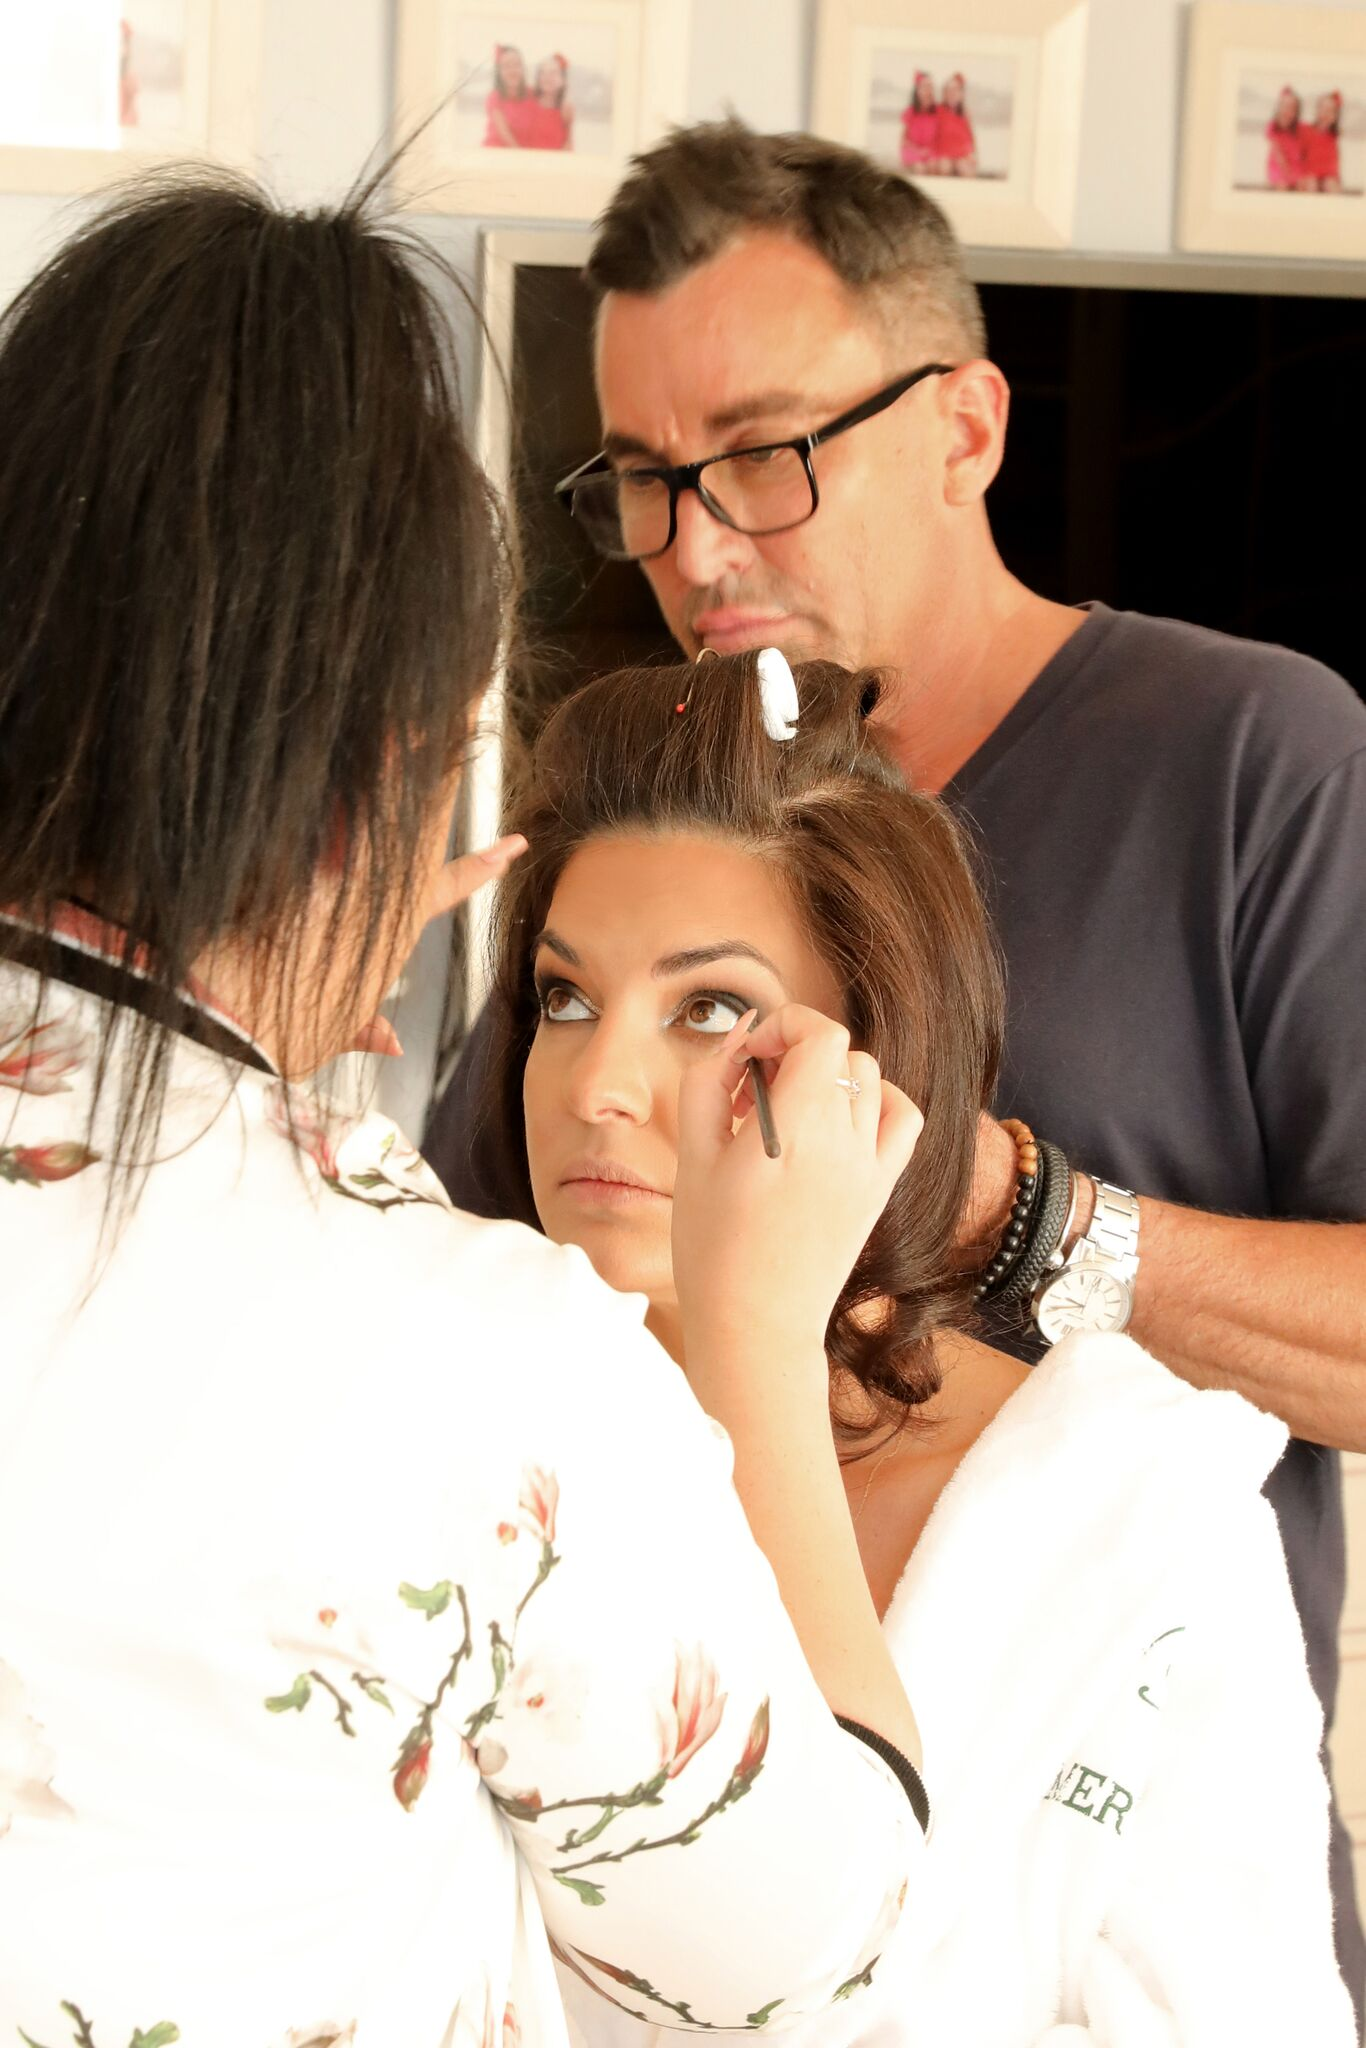 Behind the Scenes of Dolce and Gabbanna Carretto Siciliano Inspired Photoshoot - Hair by Joh Bailey Makeup By Brianna